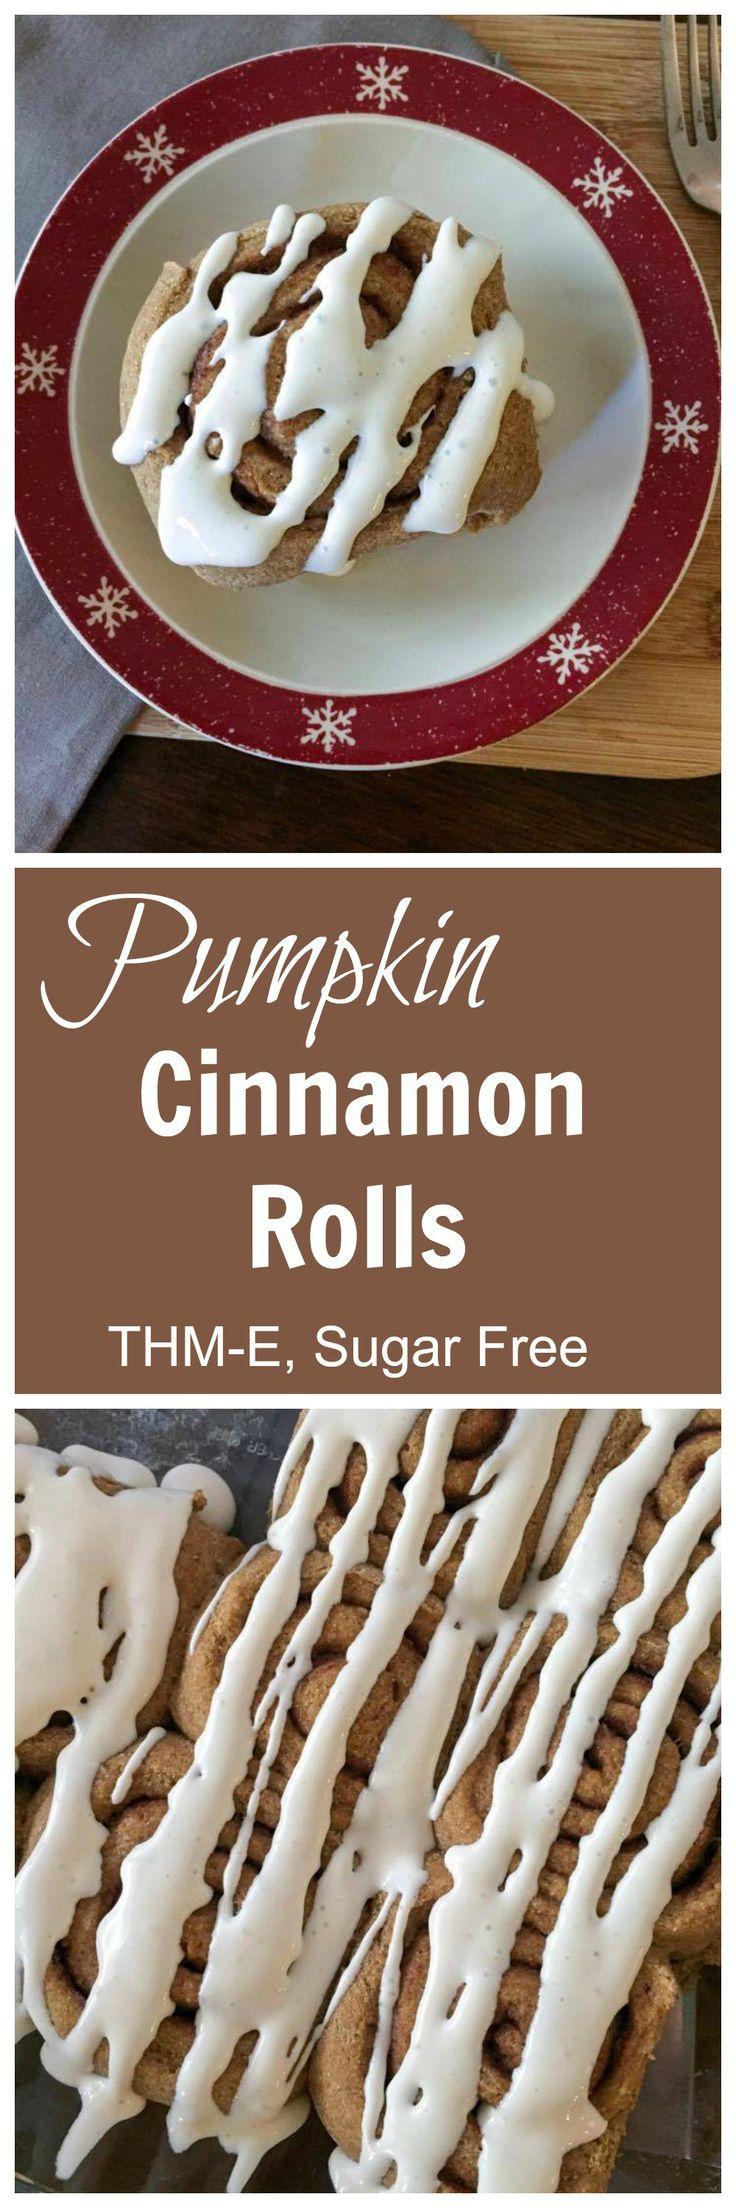 THM-Friendly Pumpkin Cinnamon Rolls (THM-E, Sugar Free)